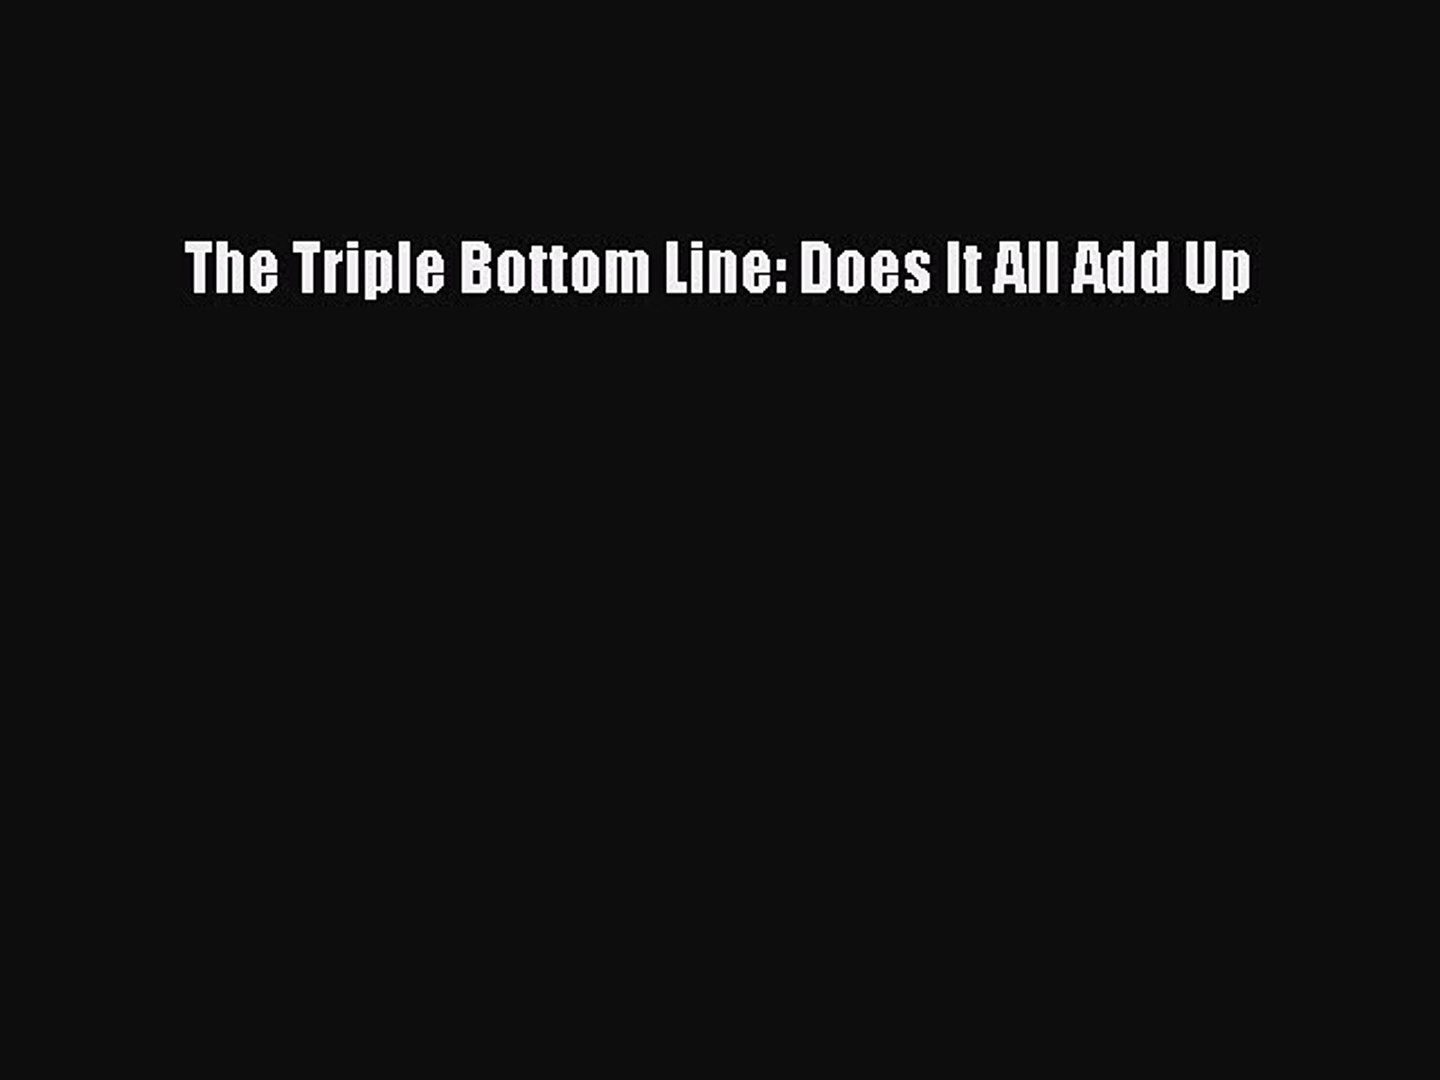 Download The Triple Bottom Line: Does It All Add Up  Read Online